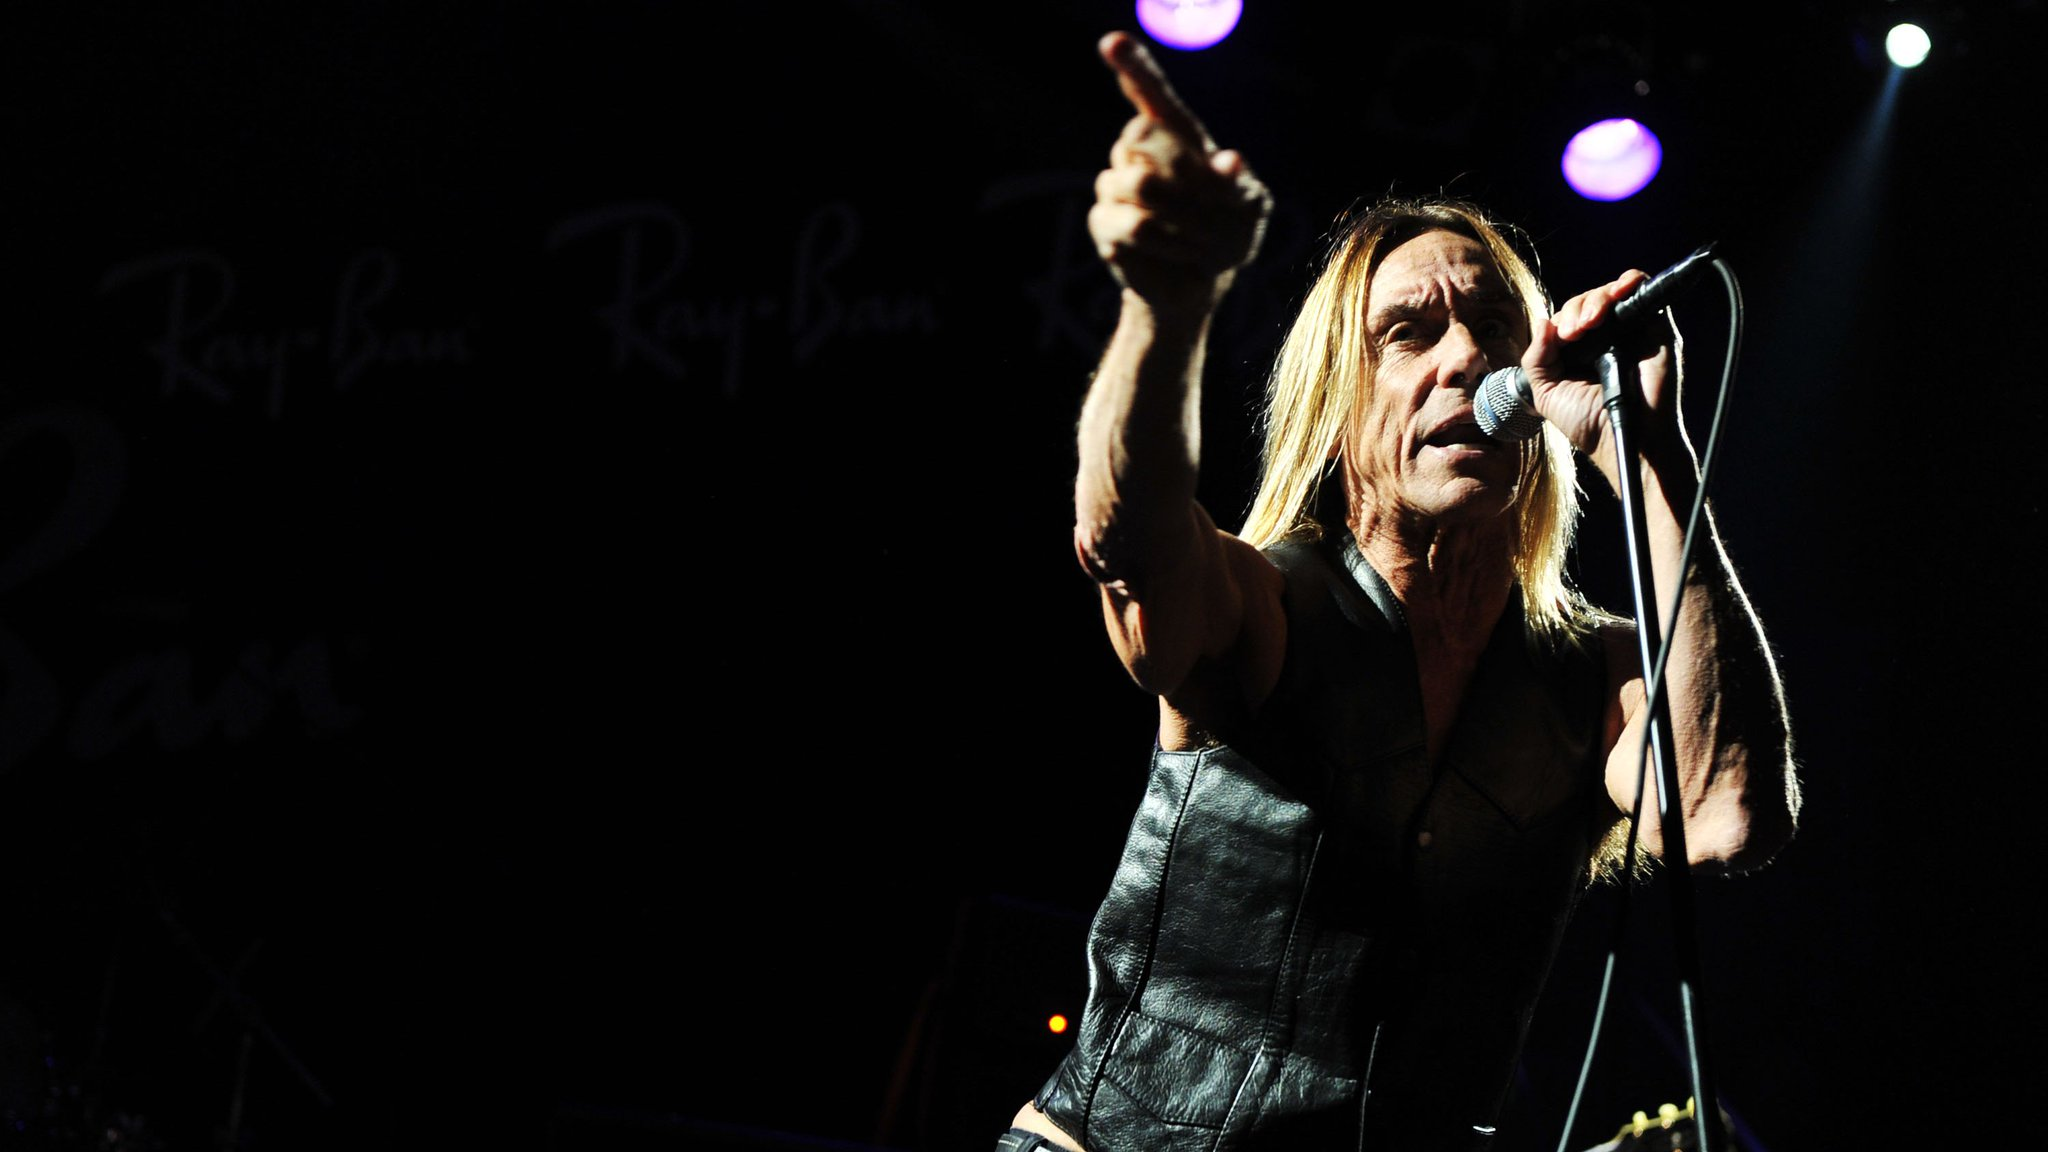 Happy birthday Iggy Pop! Look back at 20 of his wildest moments